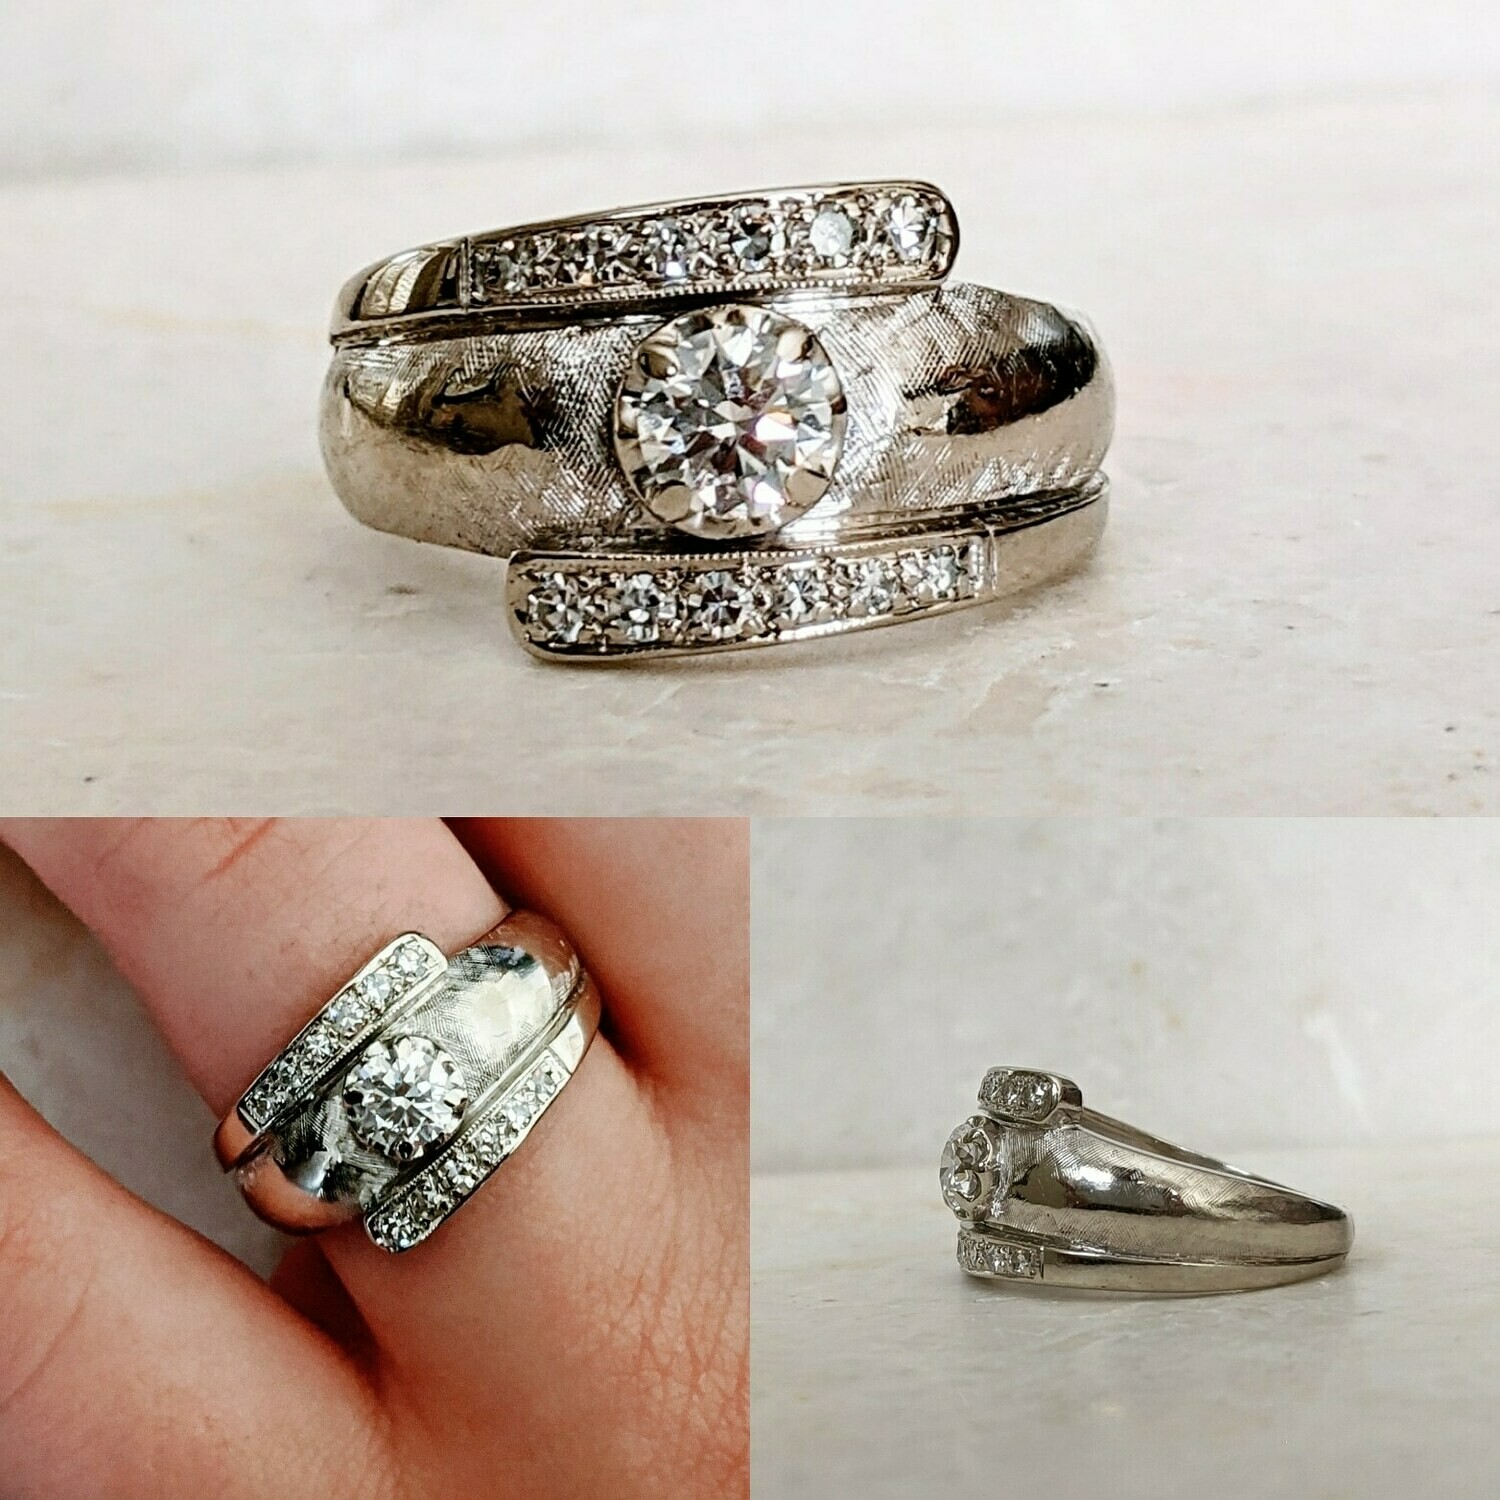 0.45 Carat Total Natural Vintage Diamond Ring VS+ H+, Sz 6.5